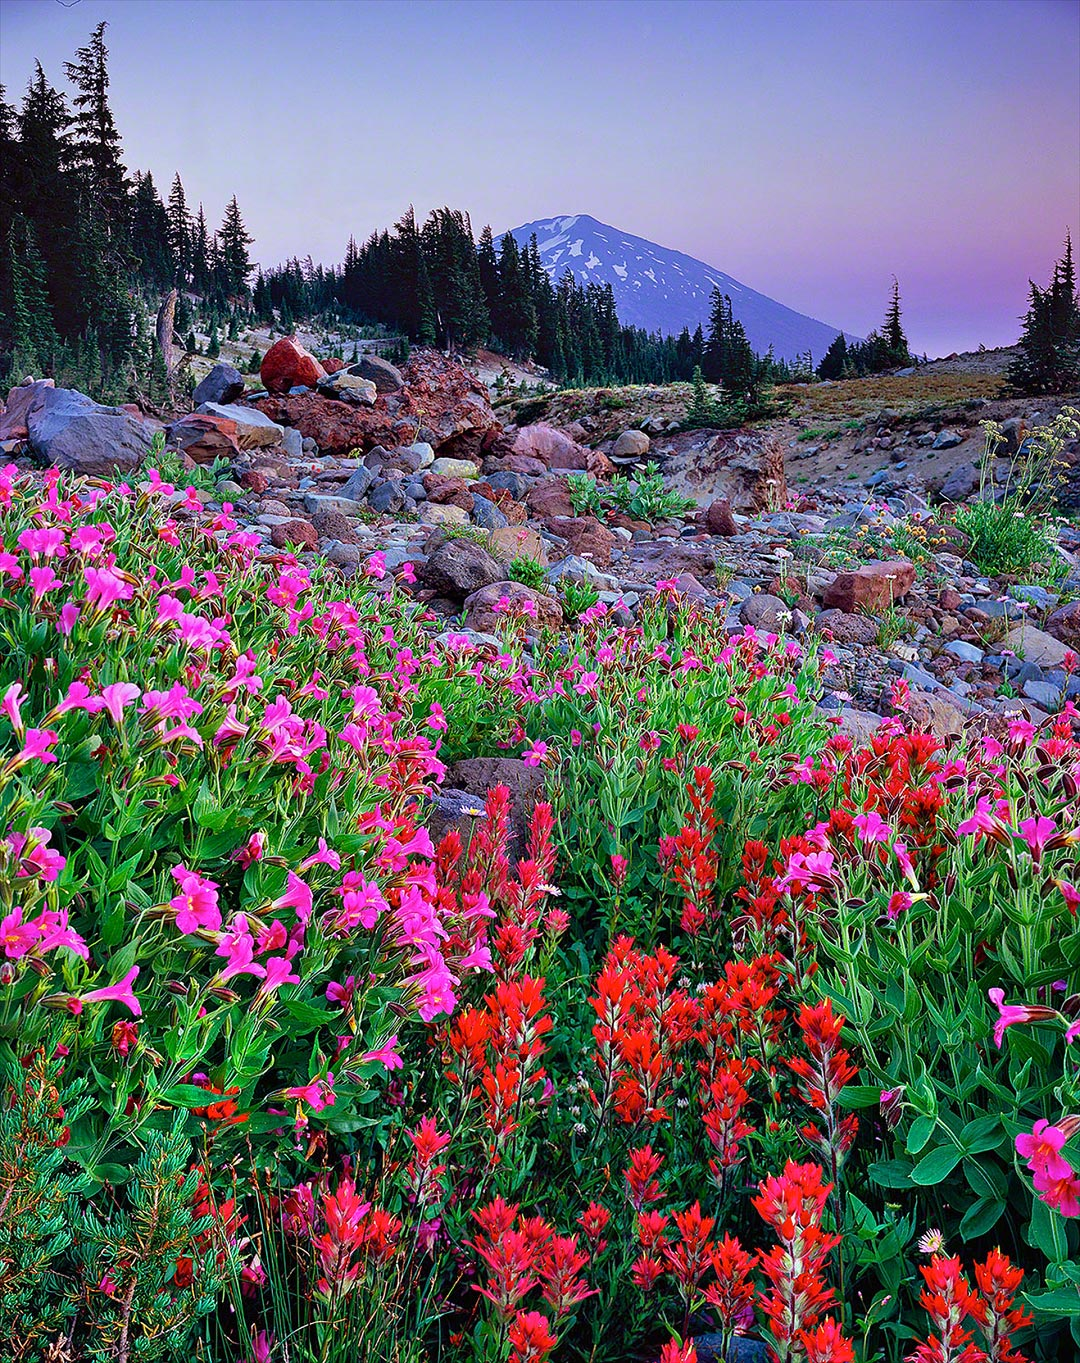 mt bachelor,wildflowers,monkeyflower,indian paintbrush